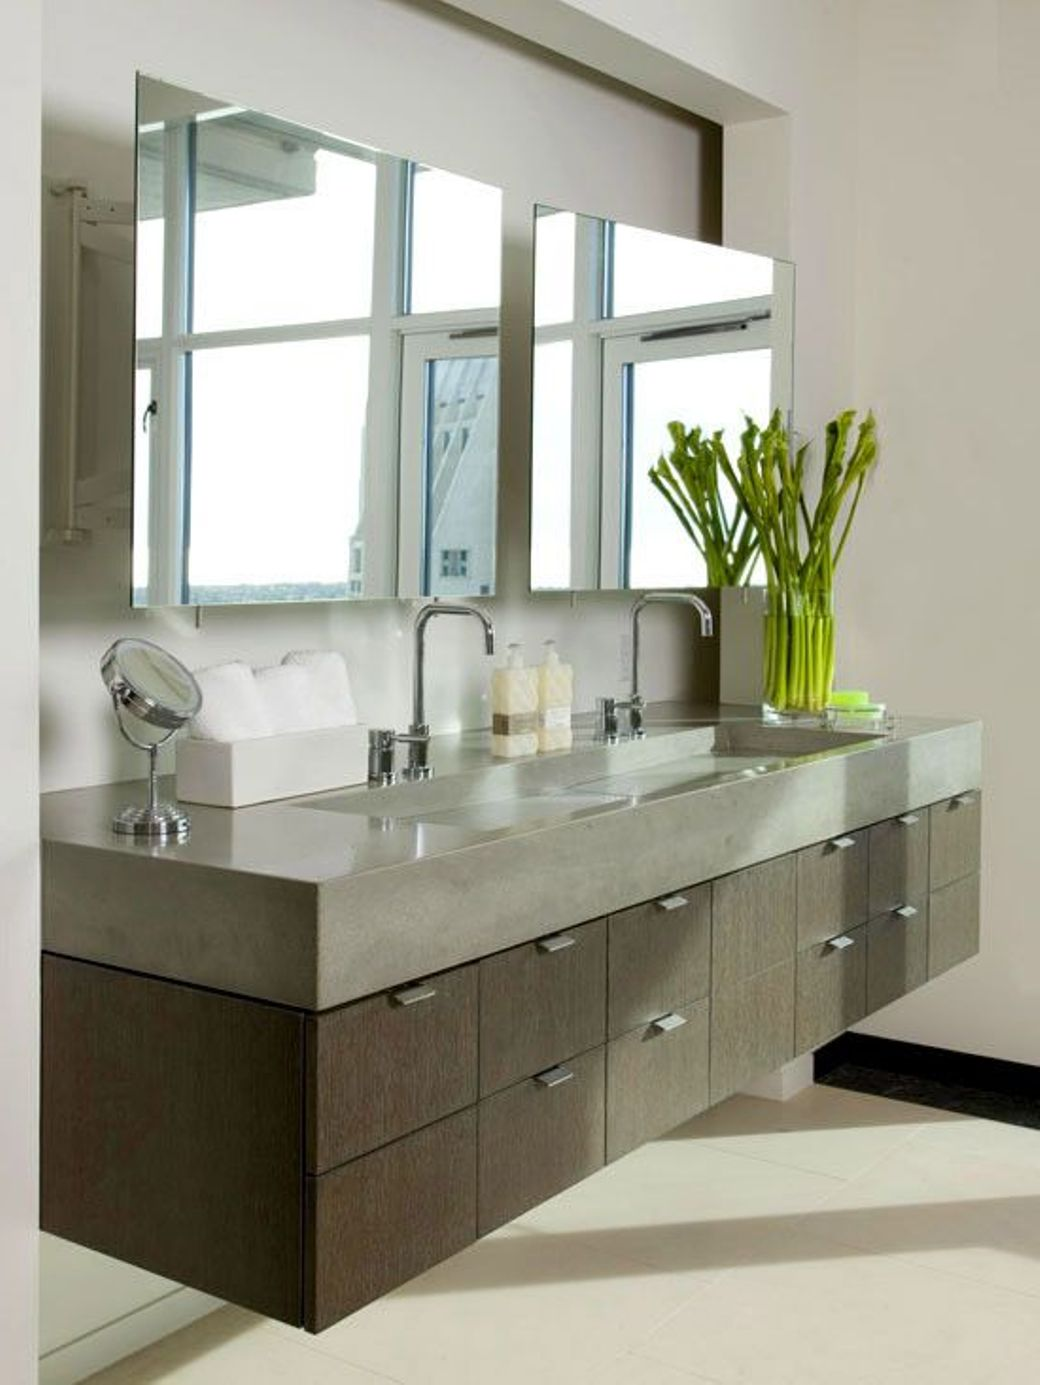 Simple Mirror Above Floating Bathroom Vanity And Fresh Flower Decor Beside Double Sink Position Realty